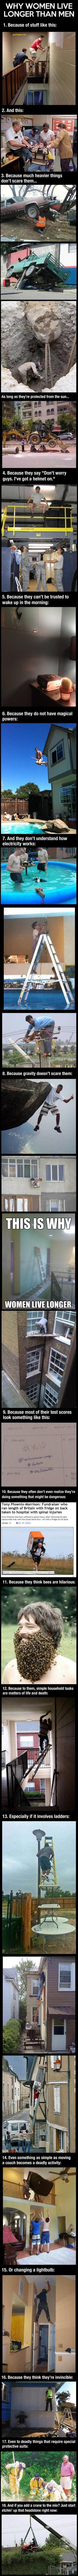 Funny Memes About This is Why Women Live Longer Than Men: